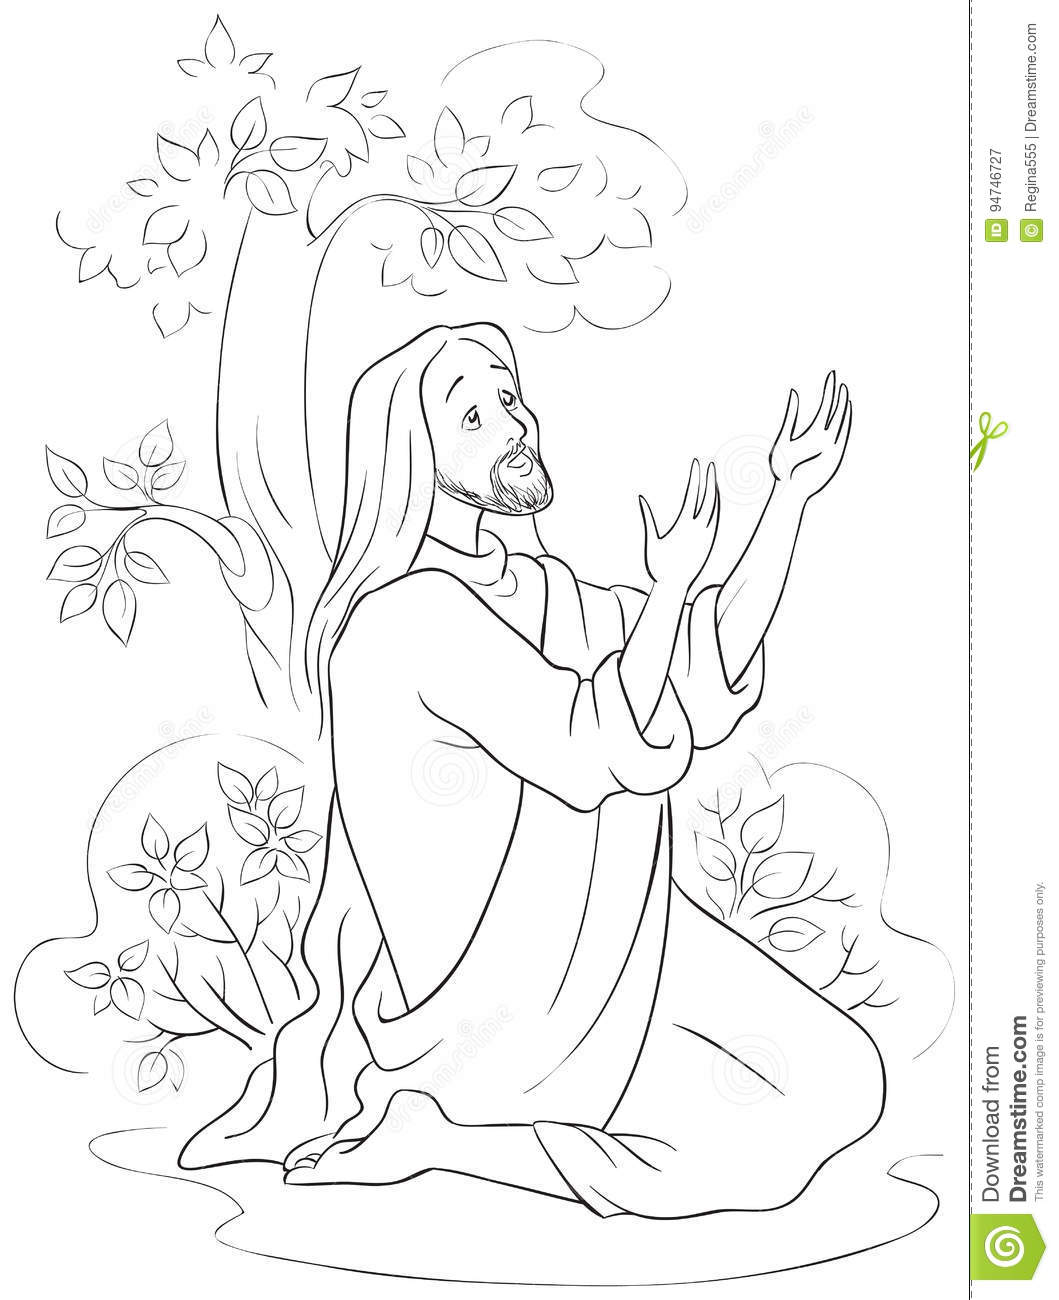 jesus in the garden of gethsemane coloring page the prayer of jesus in the gethsemane garden coloring of page gethsemane garden the jesus coloring in